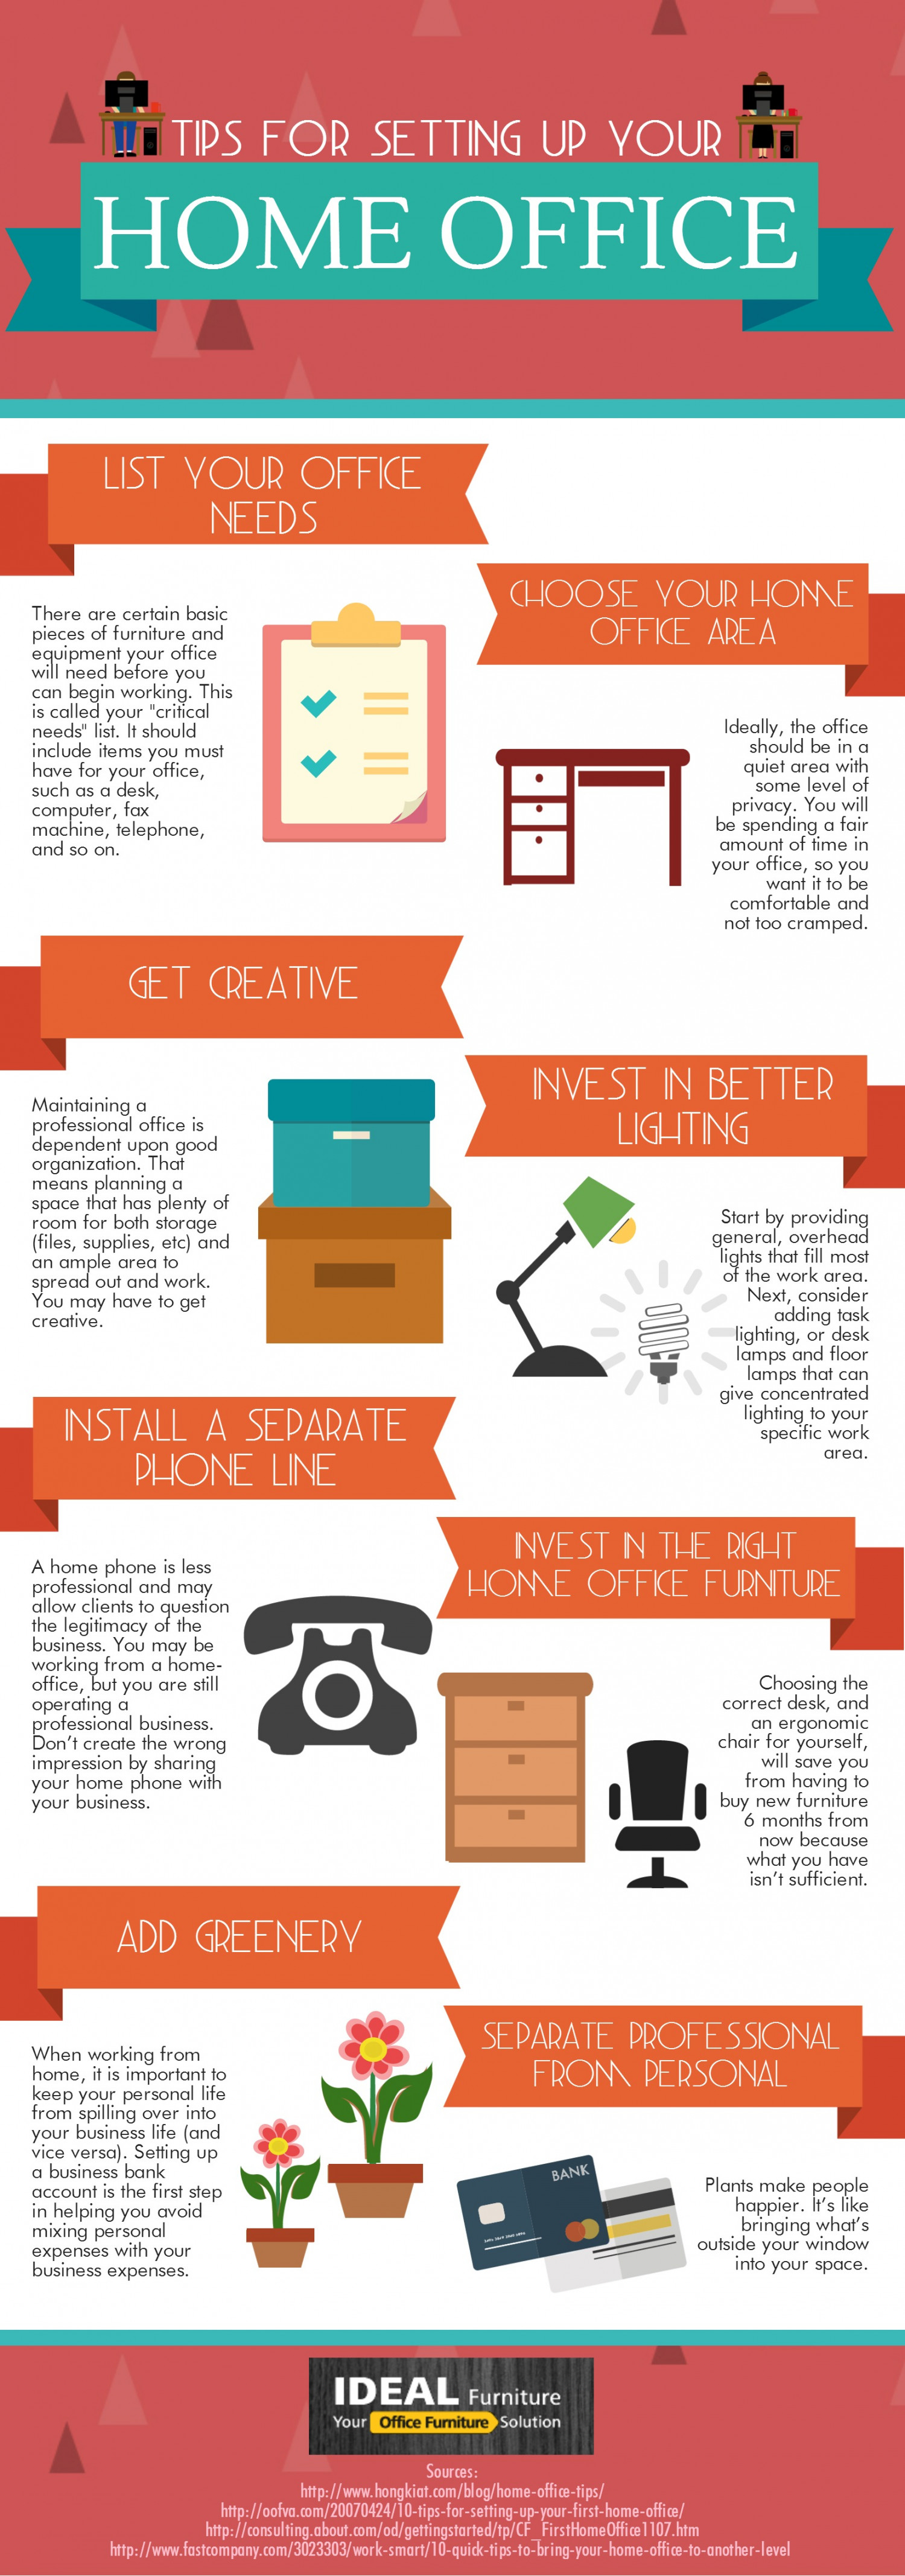 Tips For Setting Up Your Home Office Infographic